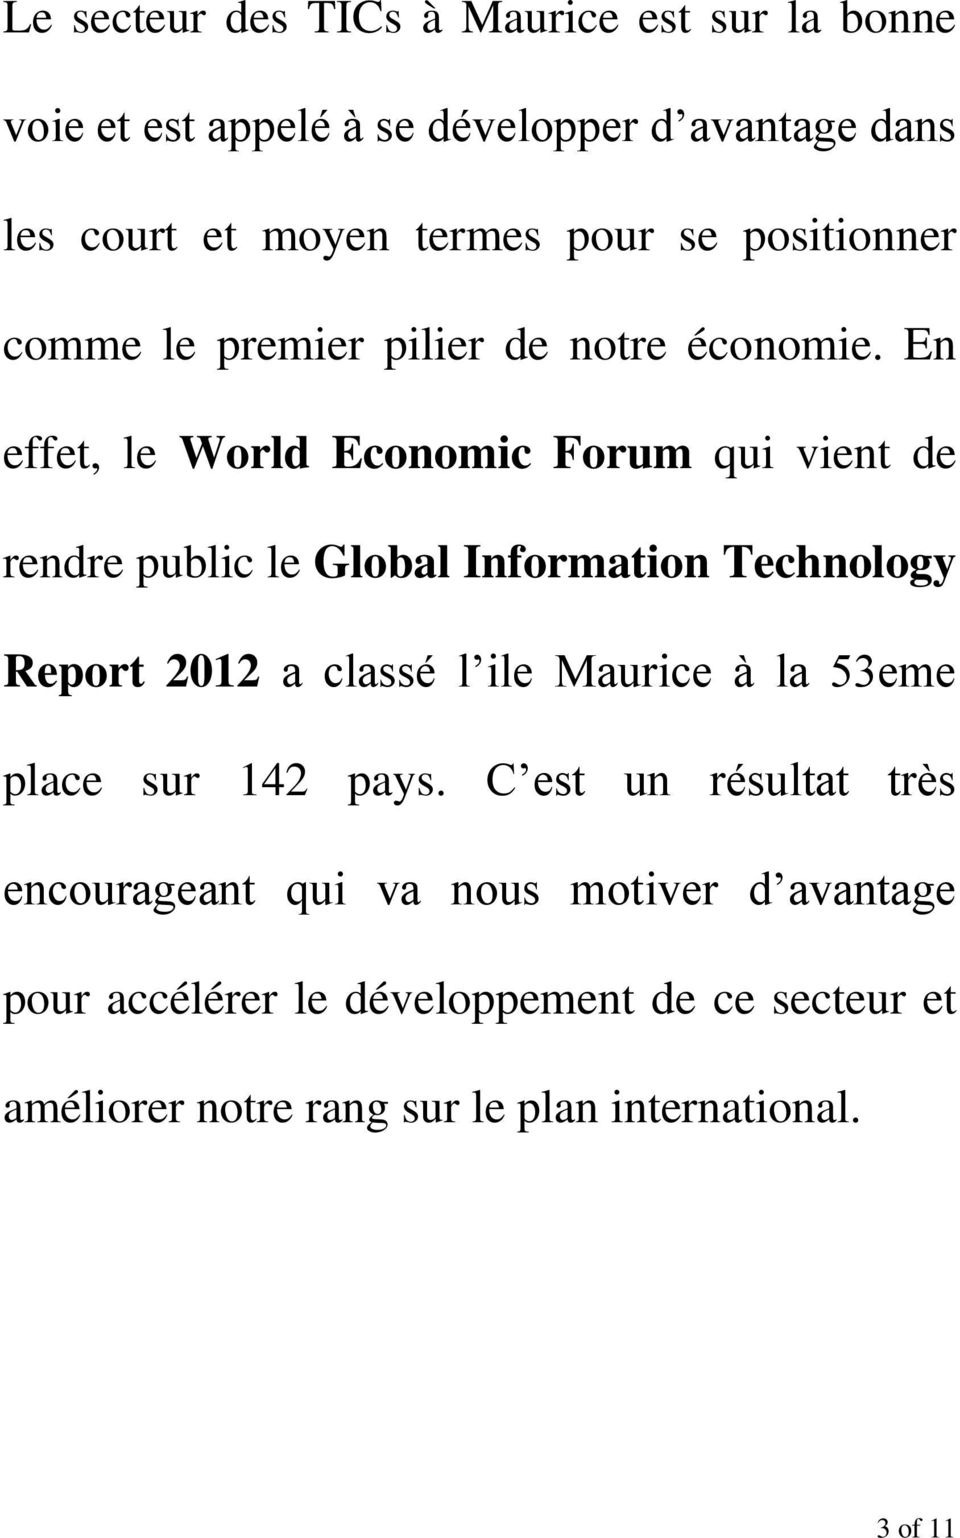 En effet, le World Economic Forum qui vient de rendre public le Global Information Technology Report 2012 a classé l ile Maurice